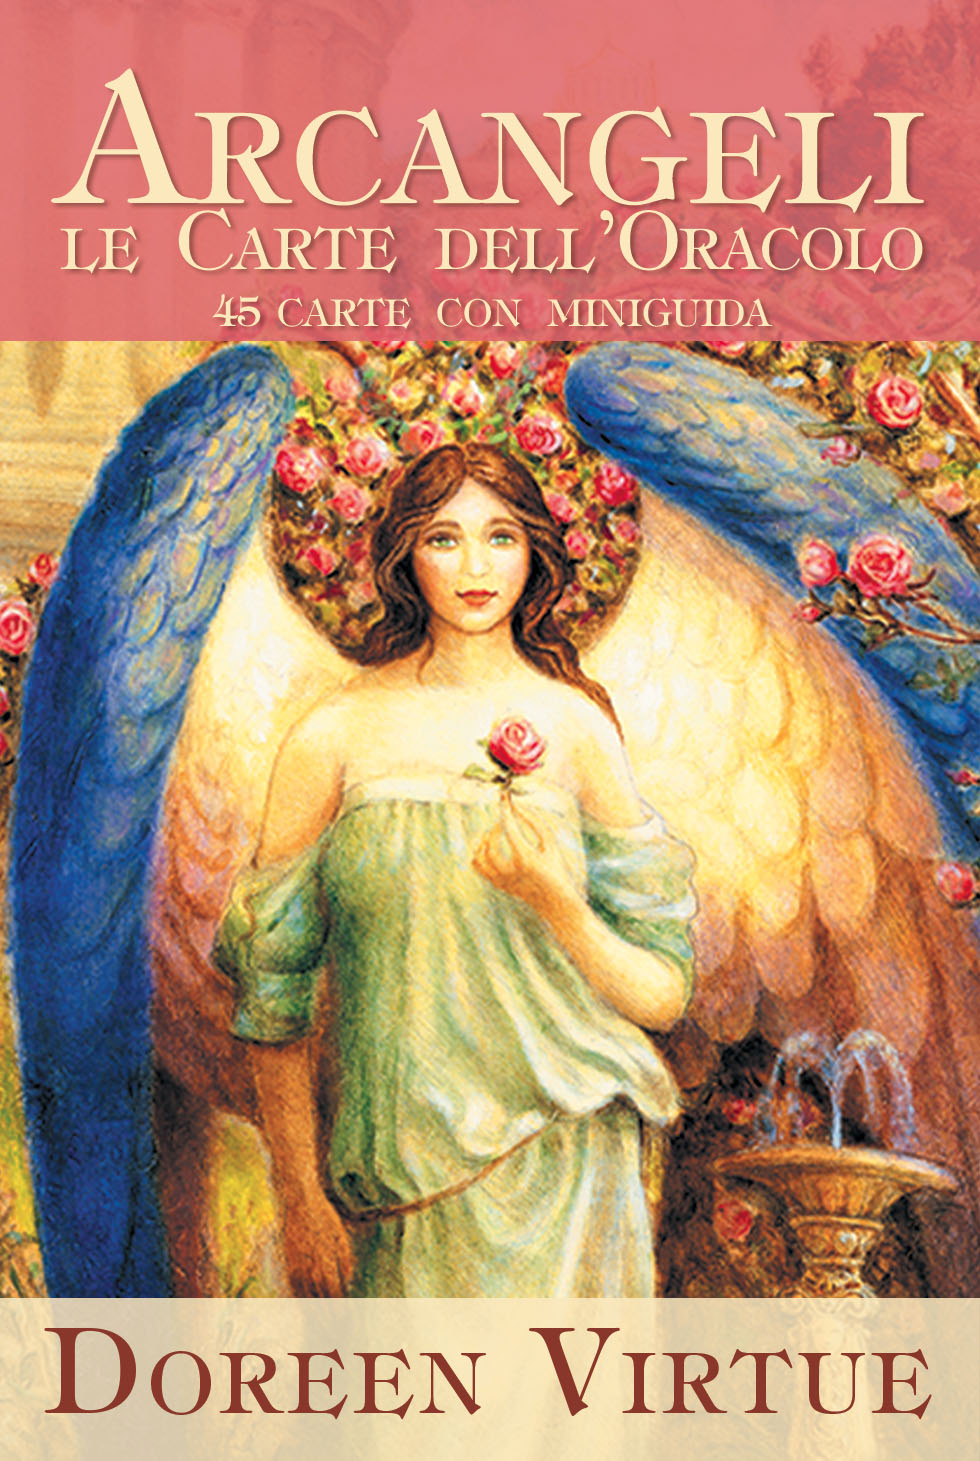 arcangeli le carte dell'oracolo